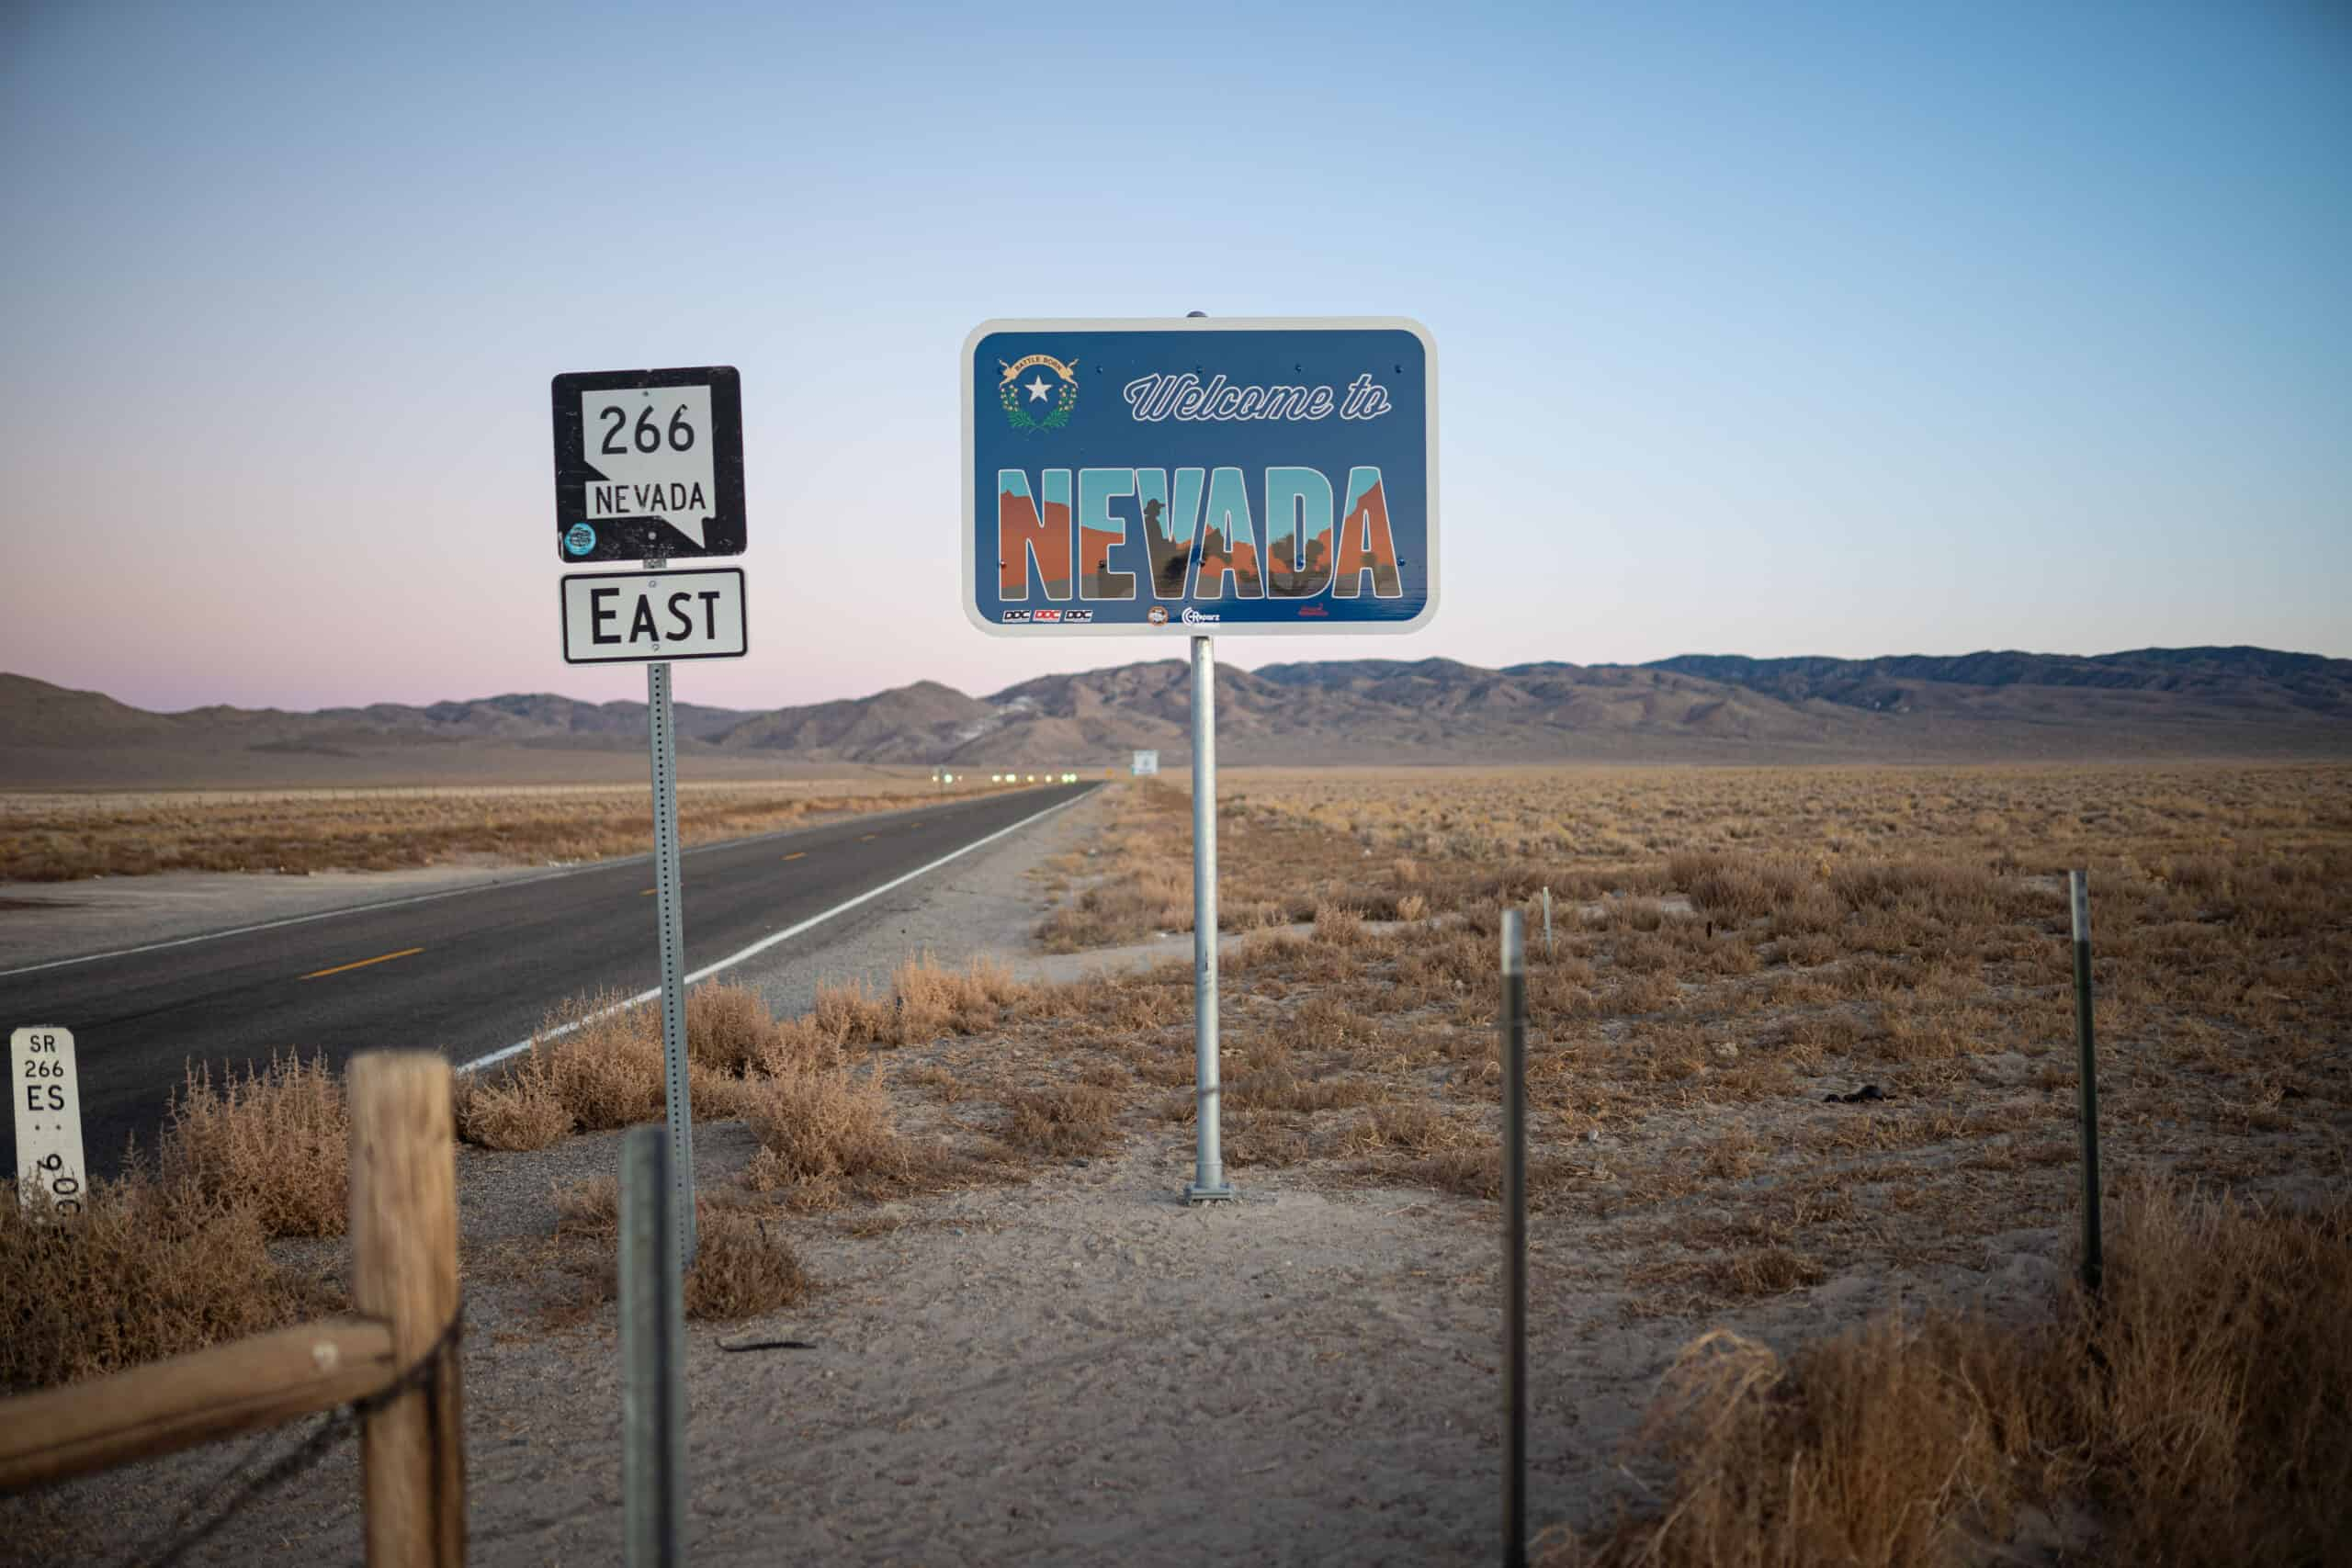 What Are The Top Three Mistakes People Make When Forming an LLC in Nevada?